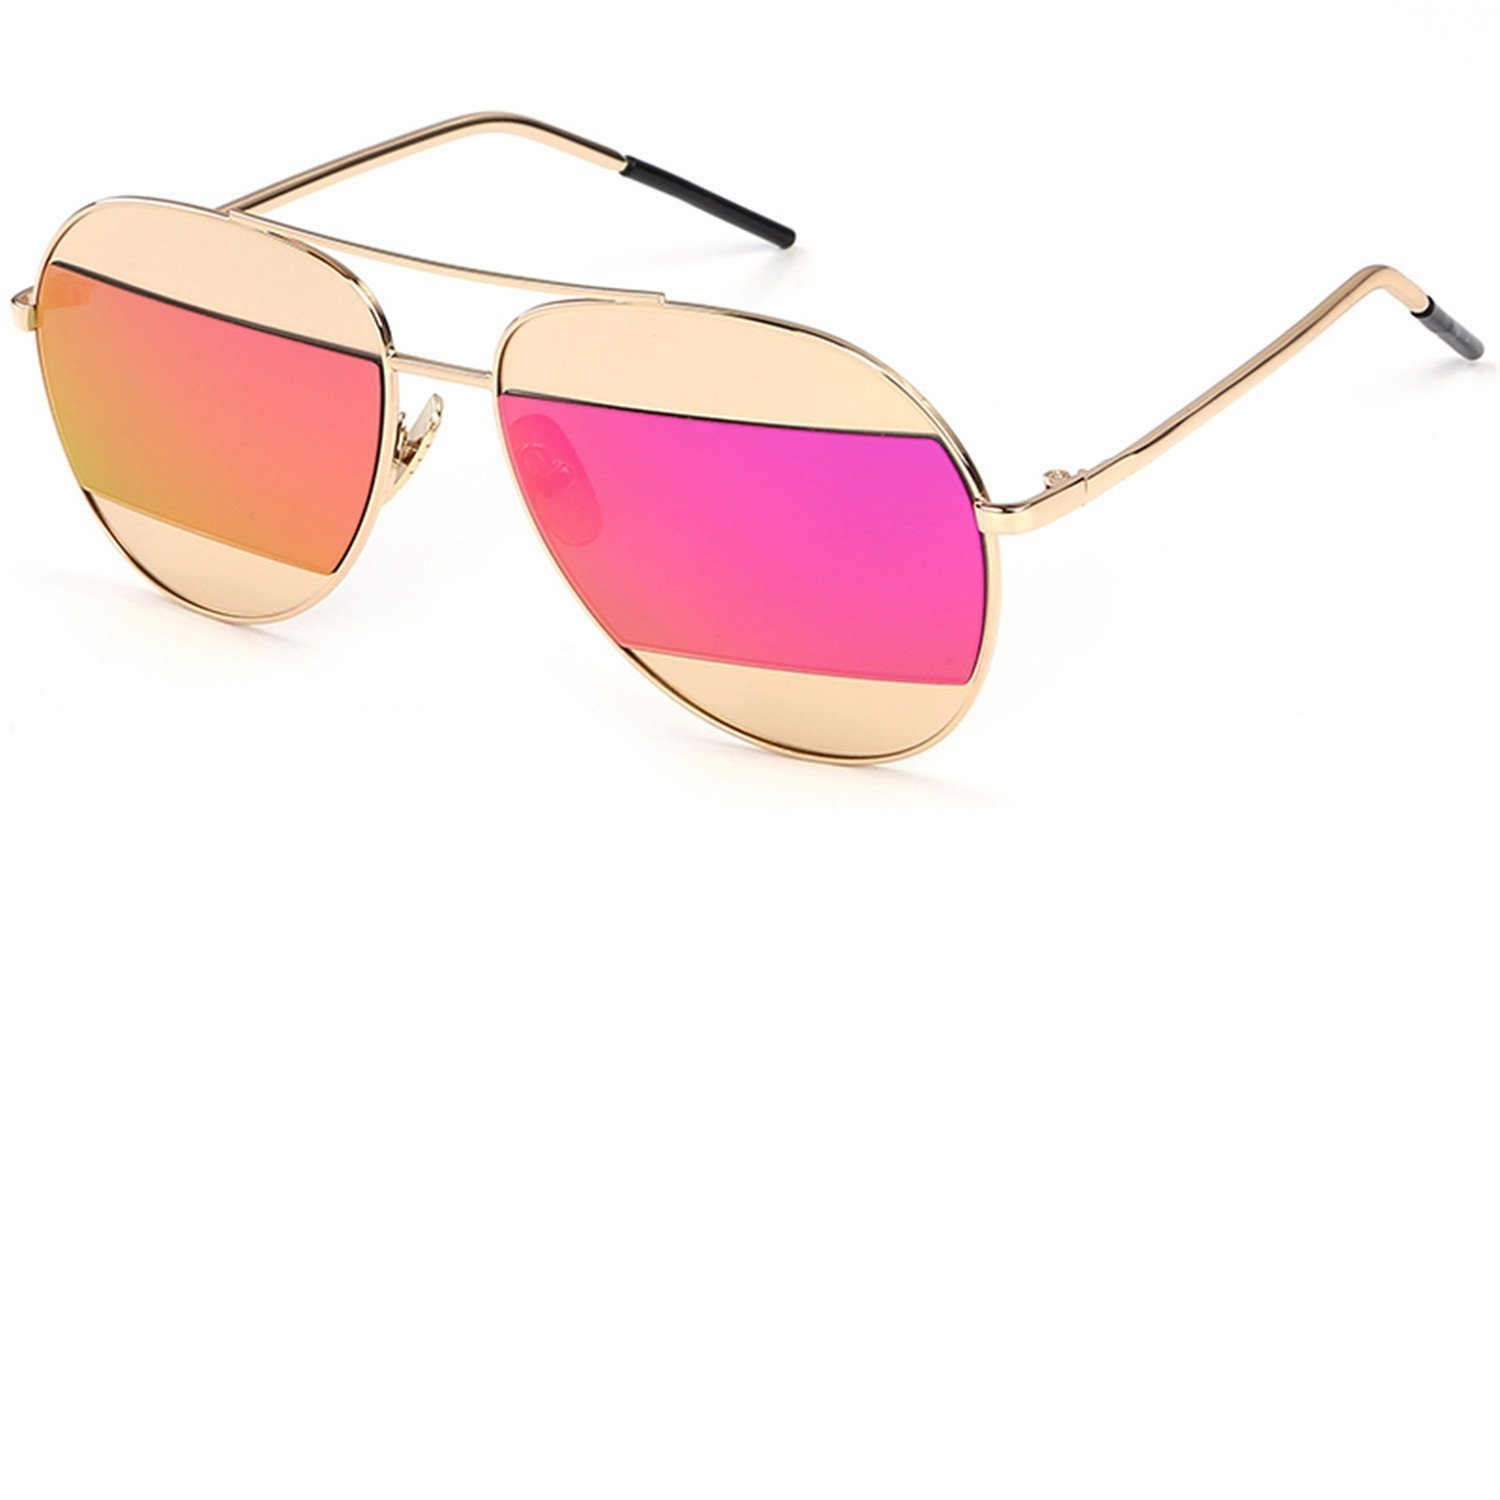 Amazon.com: Toping Fine Decoration Classic Shades Sunglasses ...